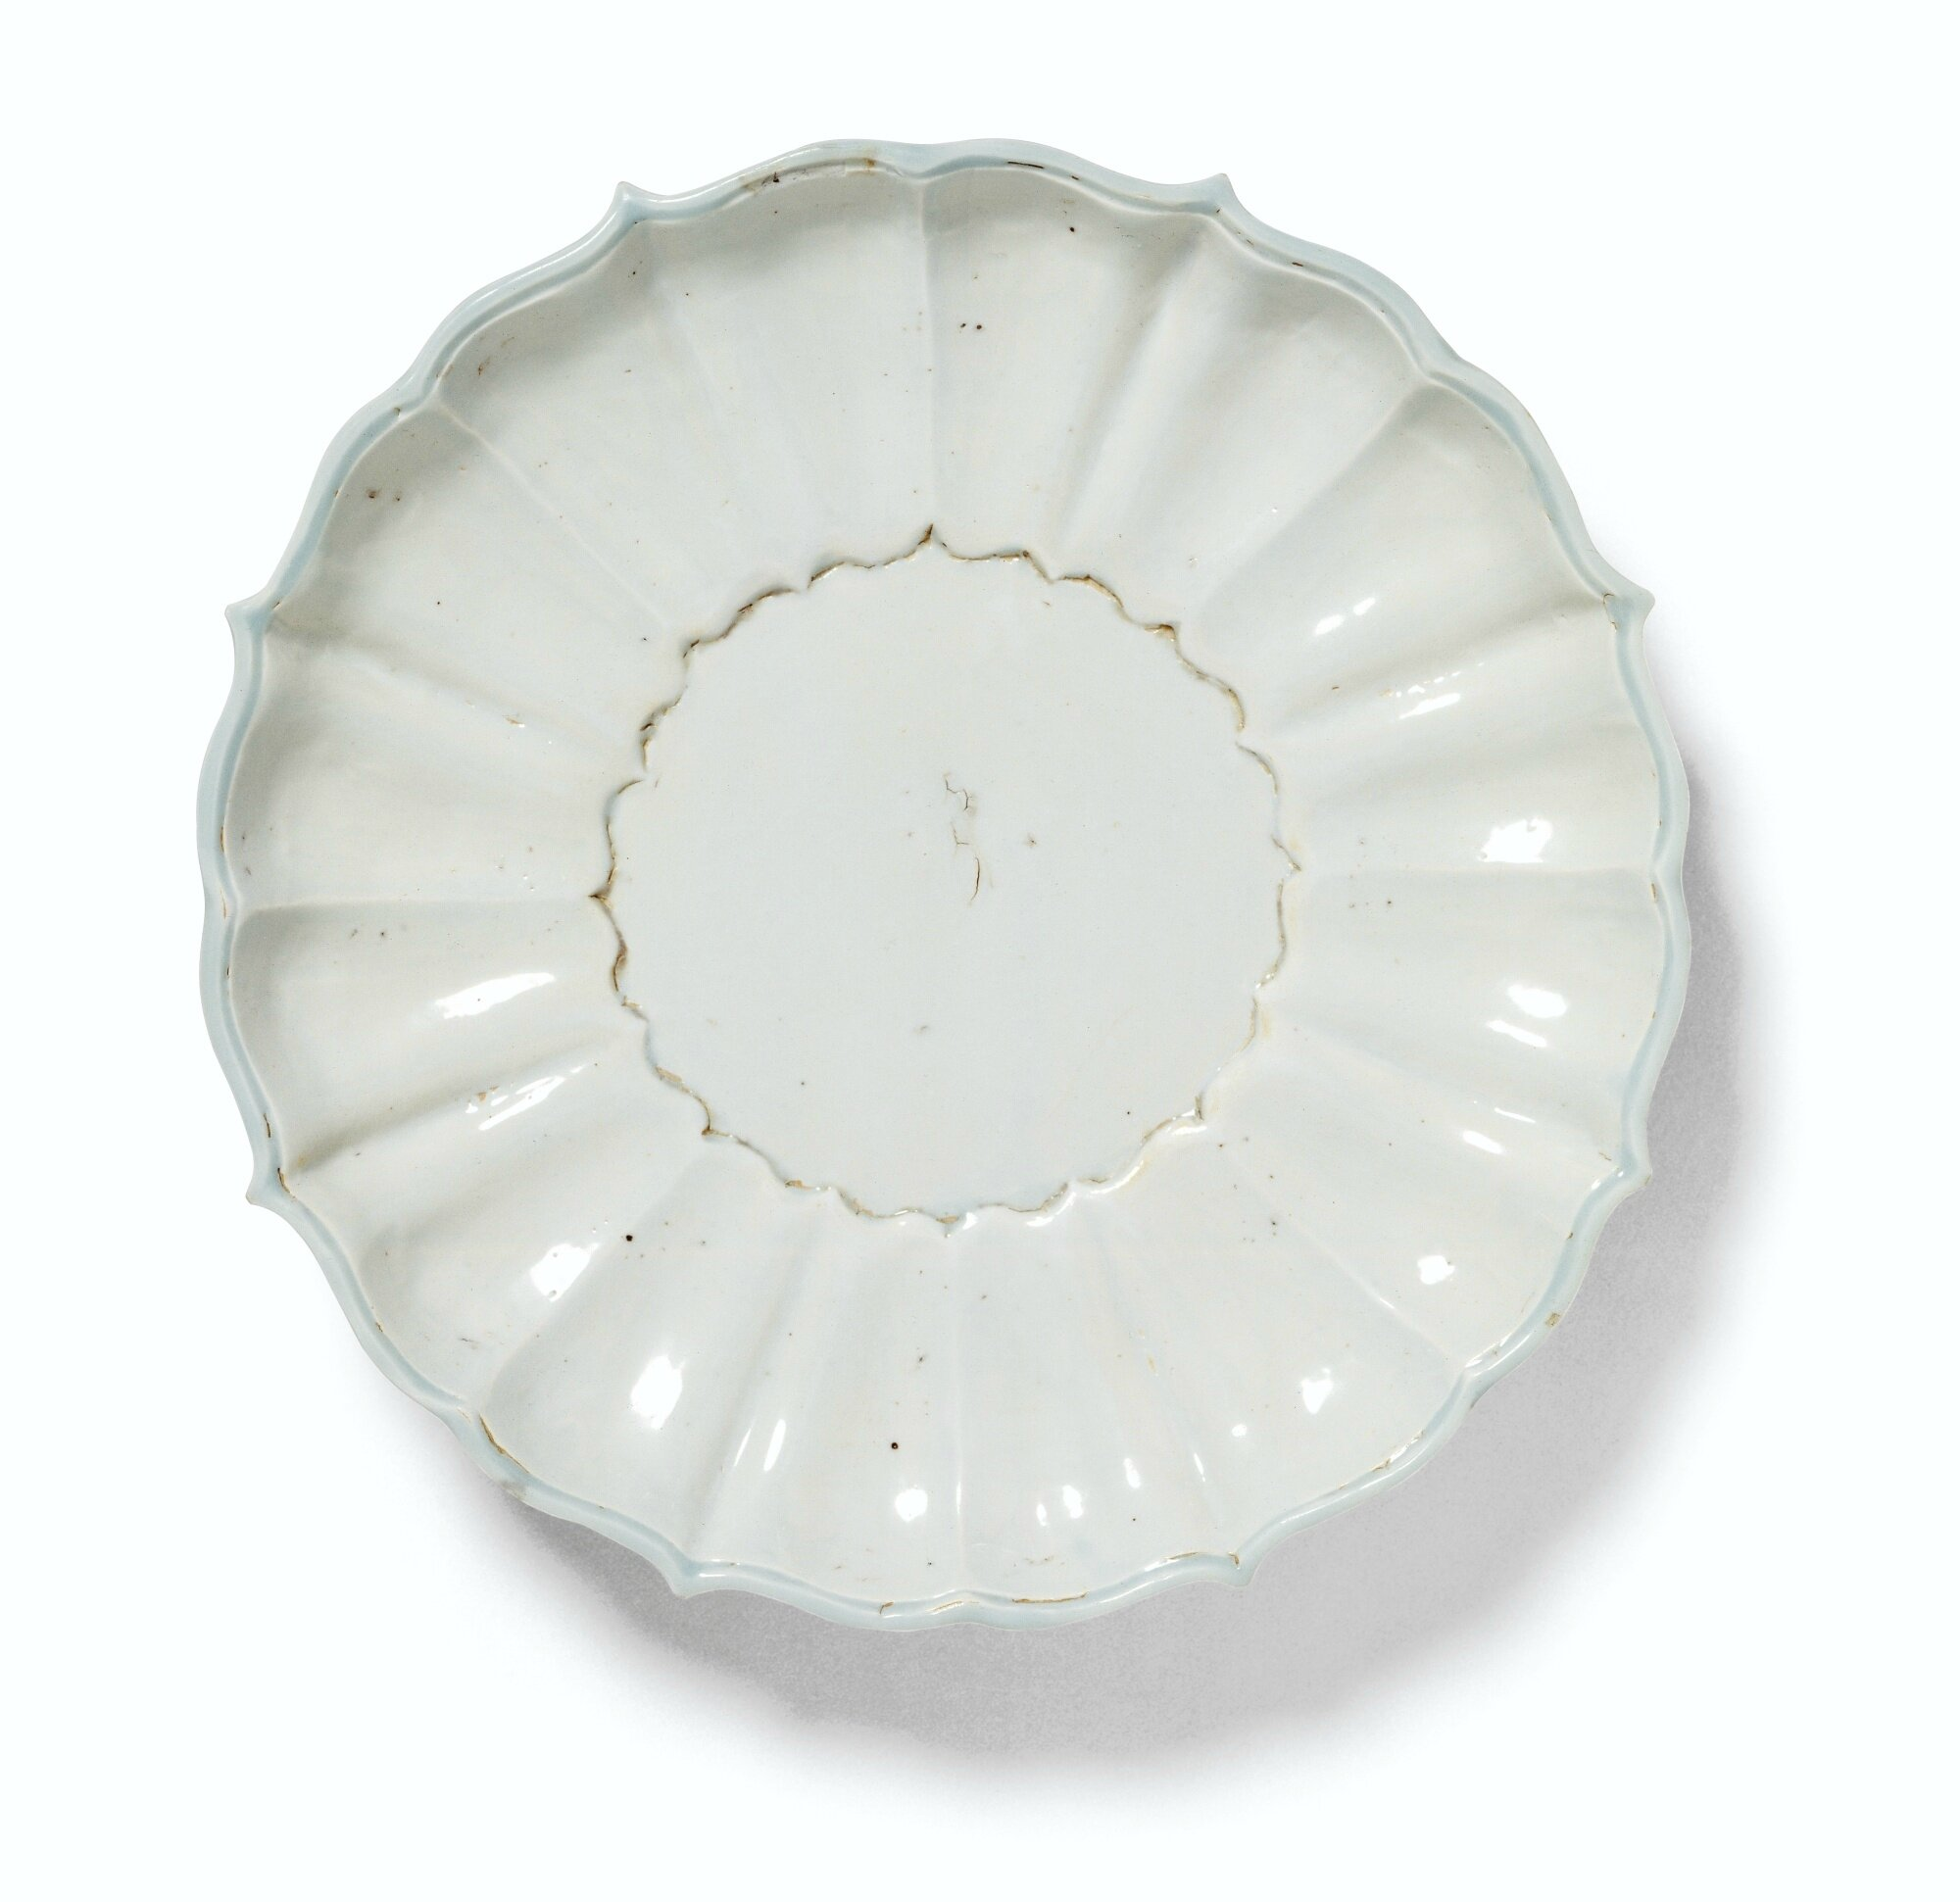 An unusual white lotus-petal dish